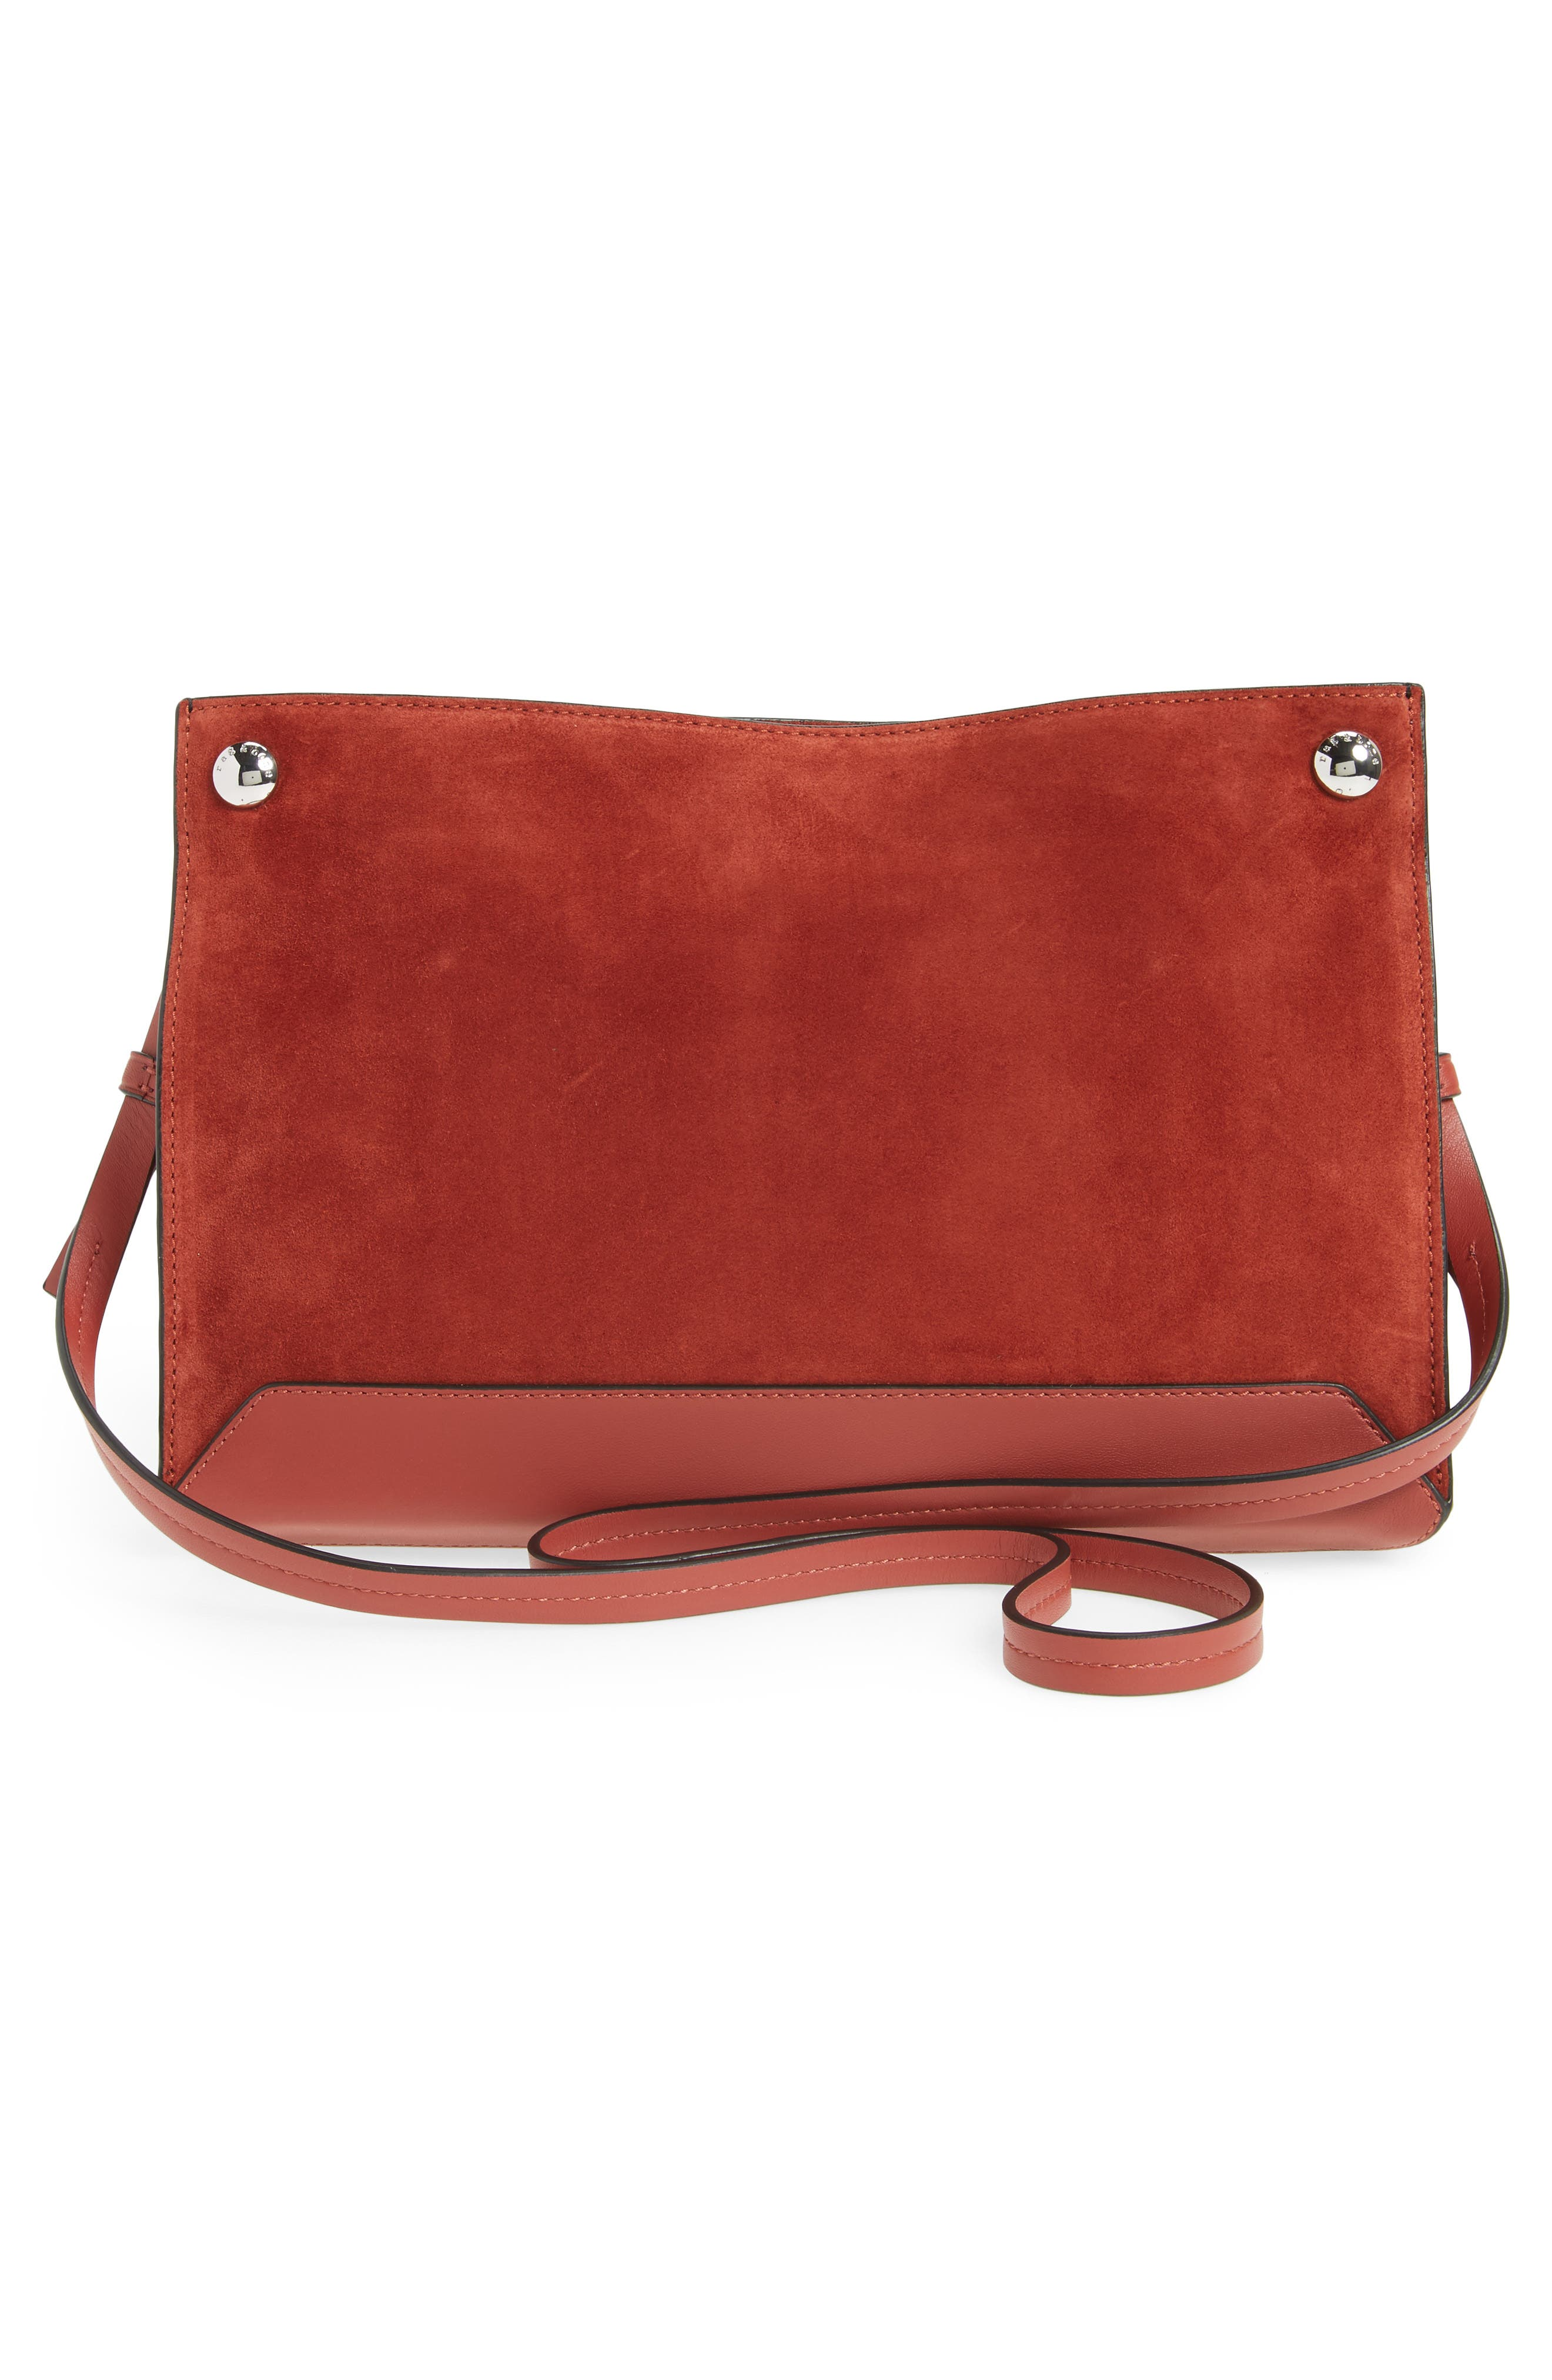 Compass Suede Crossbody Bag,                             Alternate thumbnail 3, color,                             629